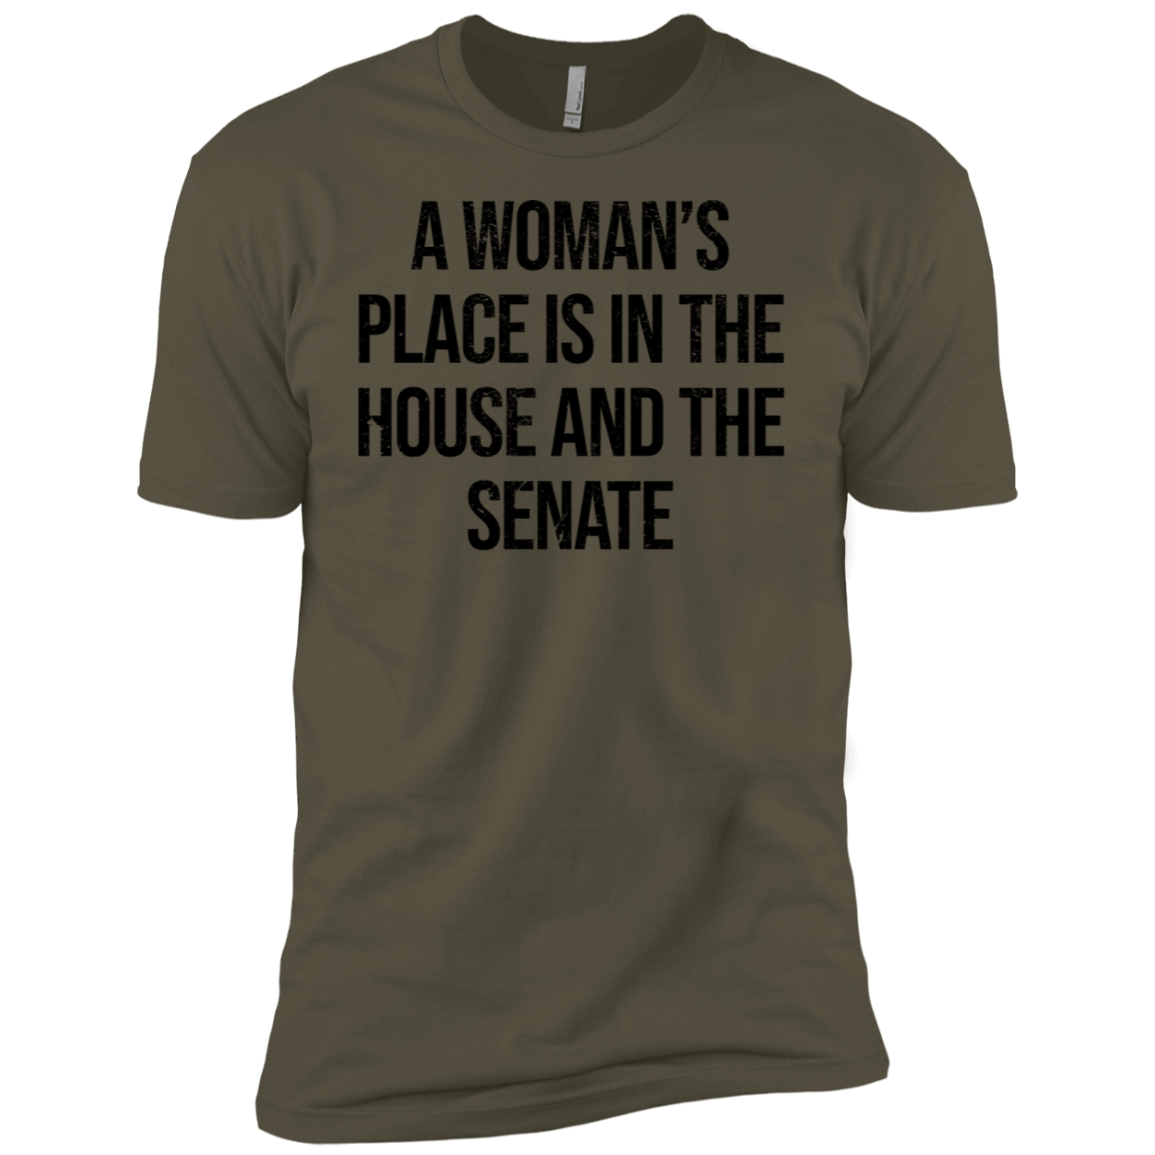 A Woman's Place Is In The House And The Senate Men's Classic Tee